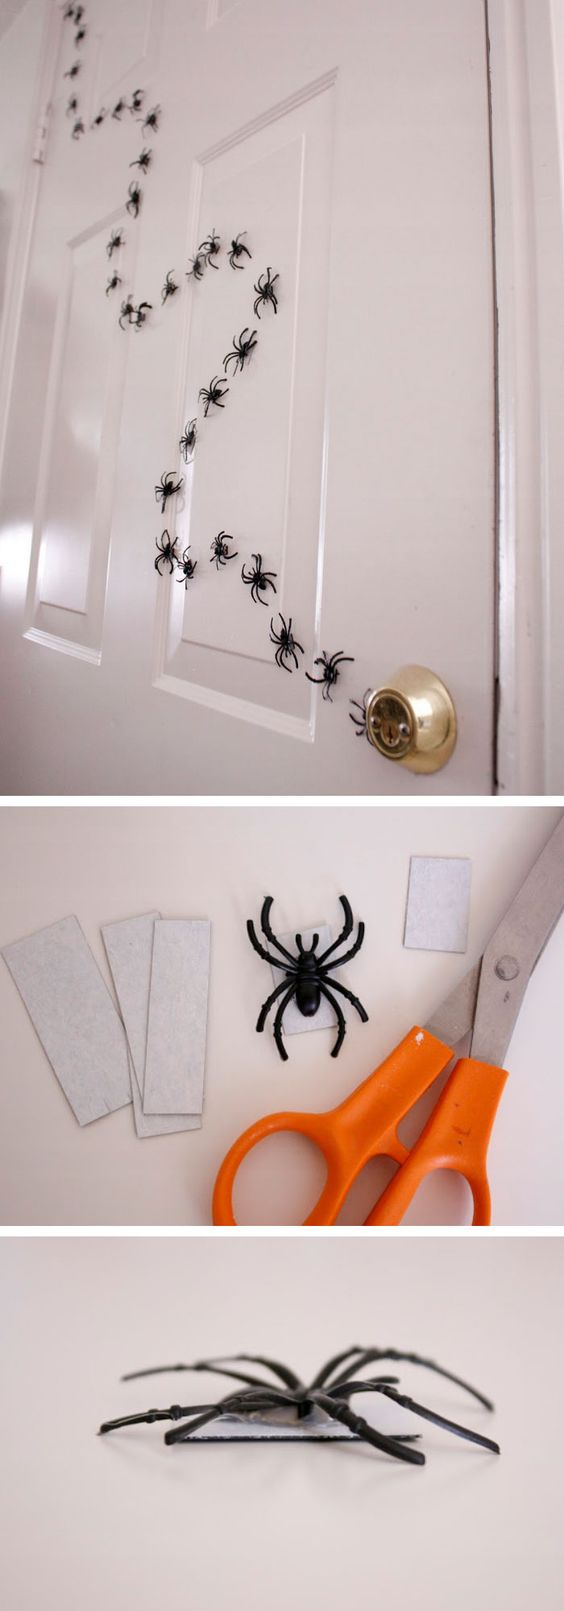 Halloween Magnetic Spiders Door Decoration.